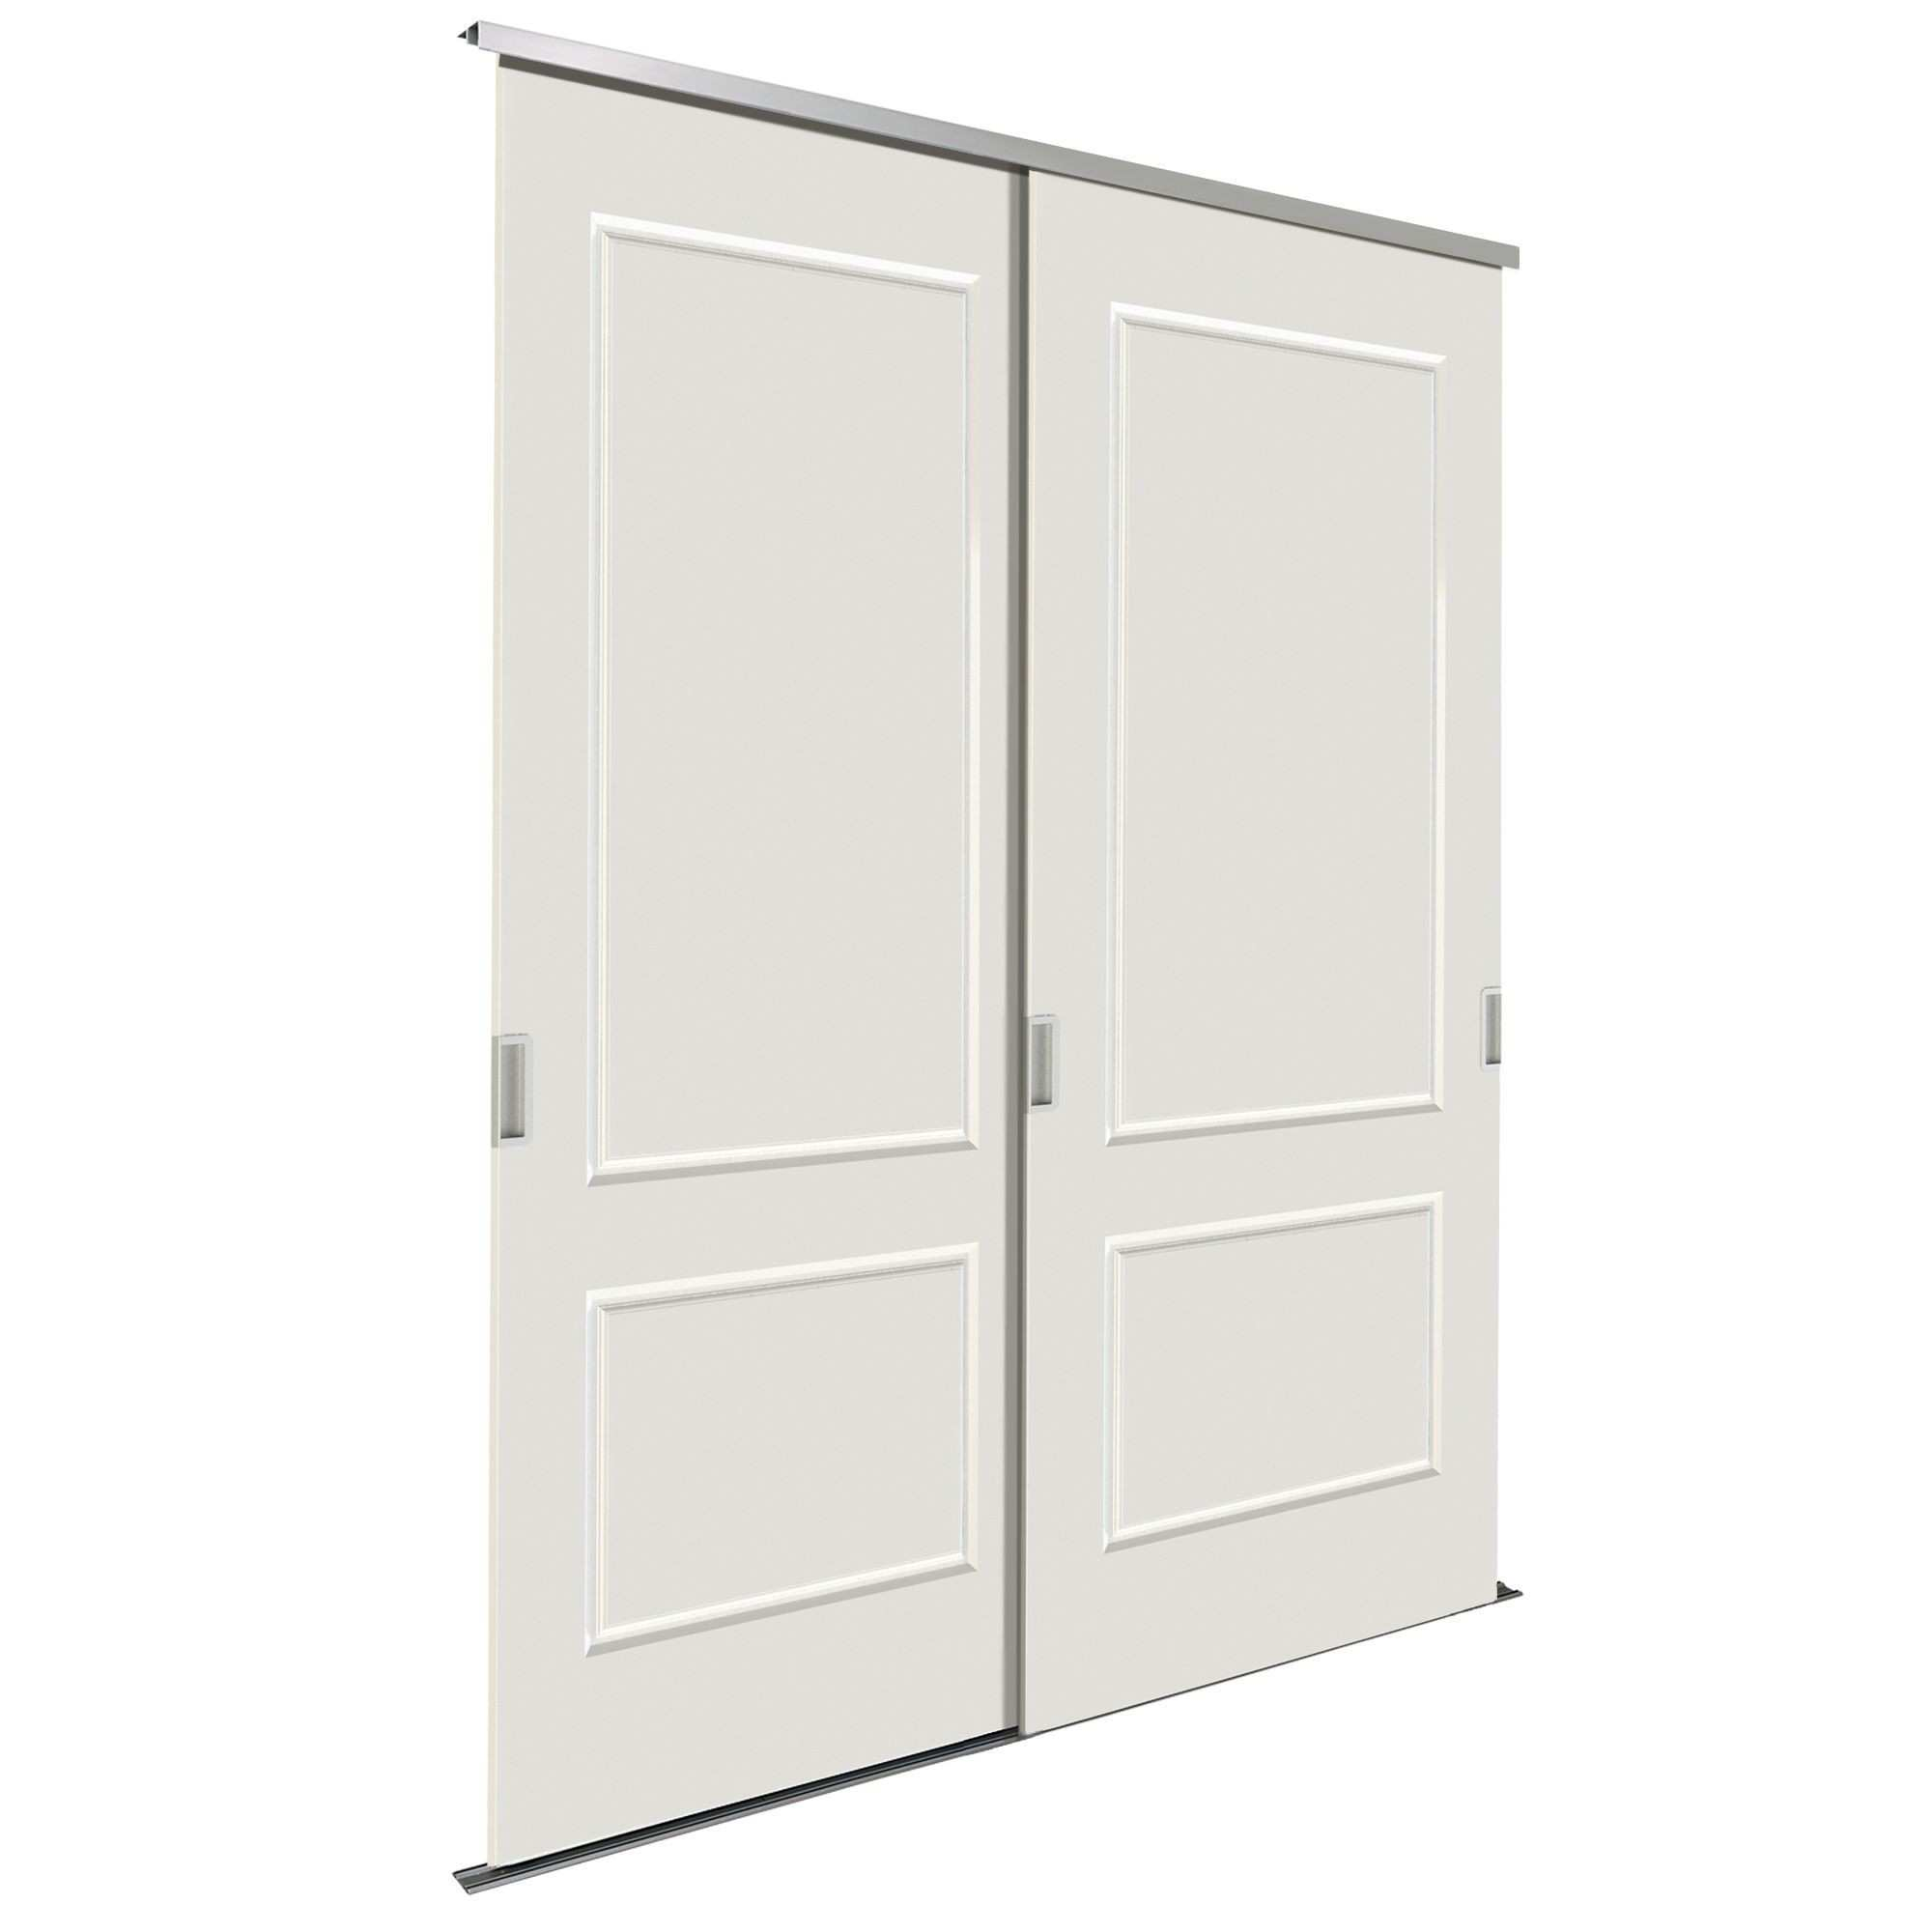 Doors 60y Wardrobe Sliding Doors Brisbane Routed Mdfi 0d Rustic